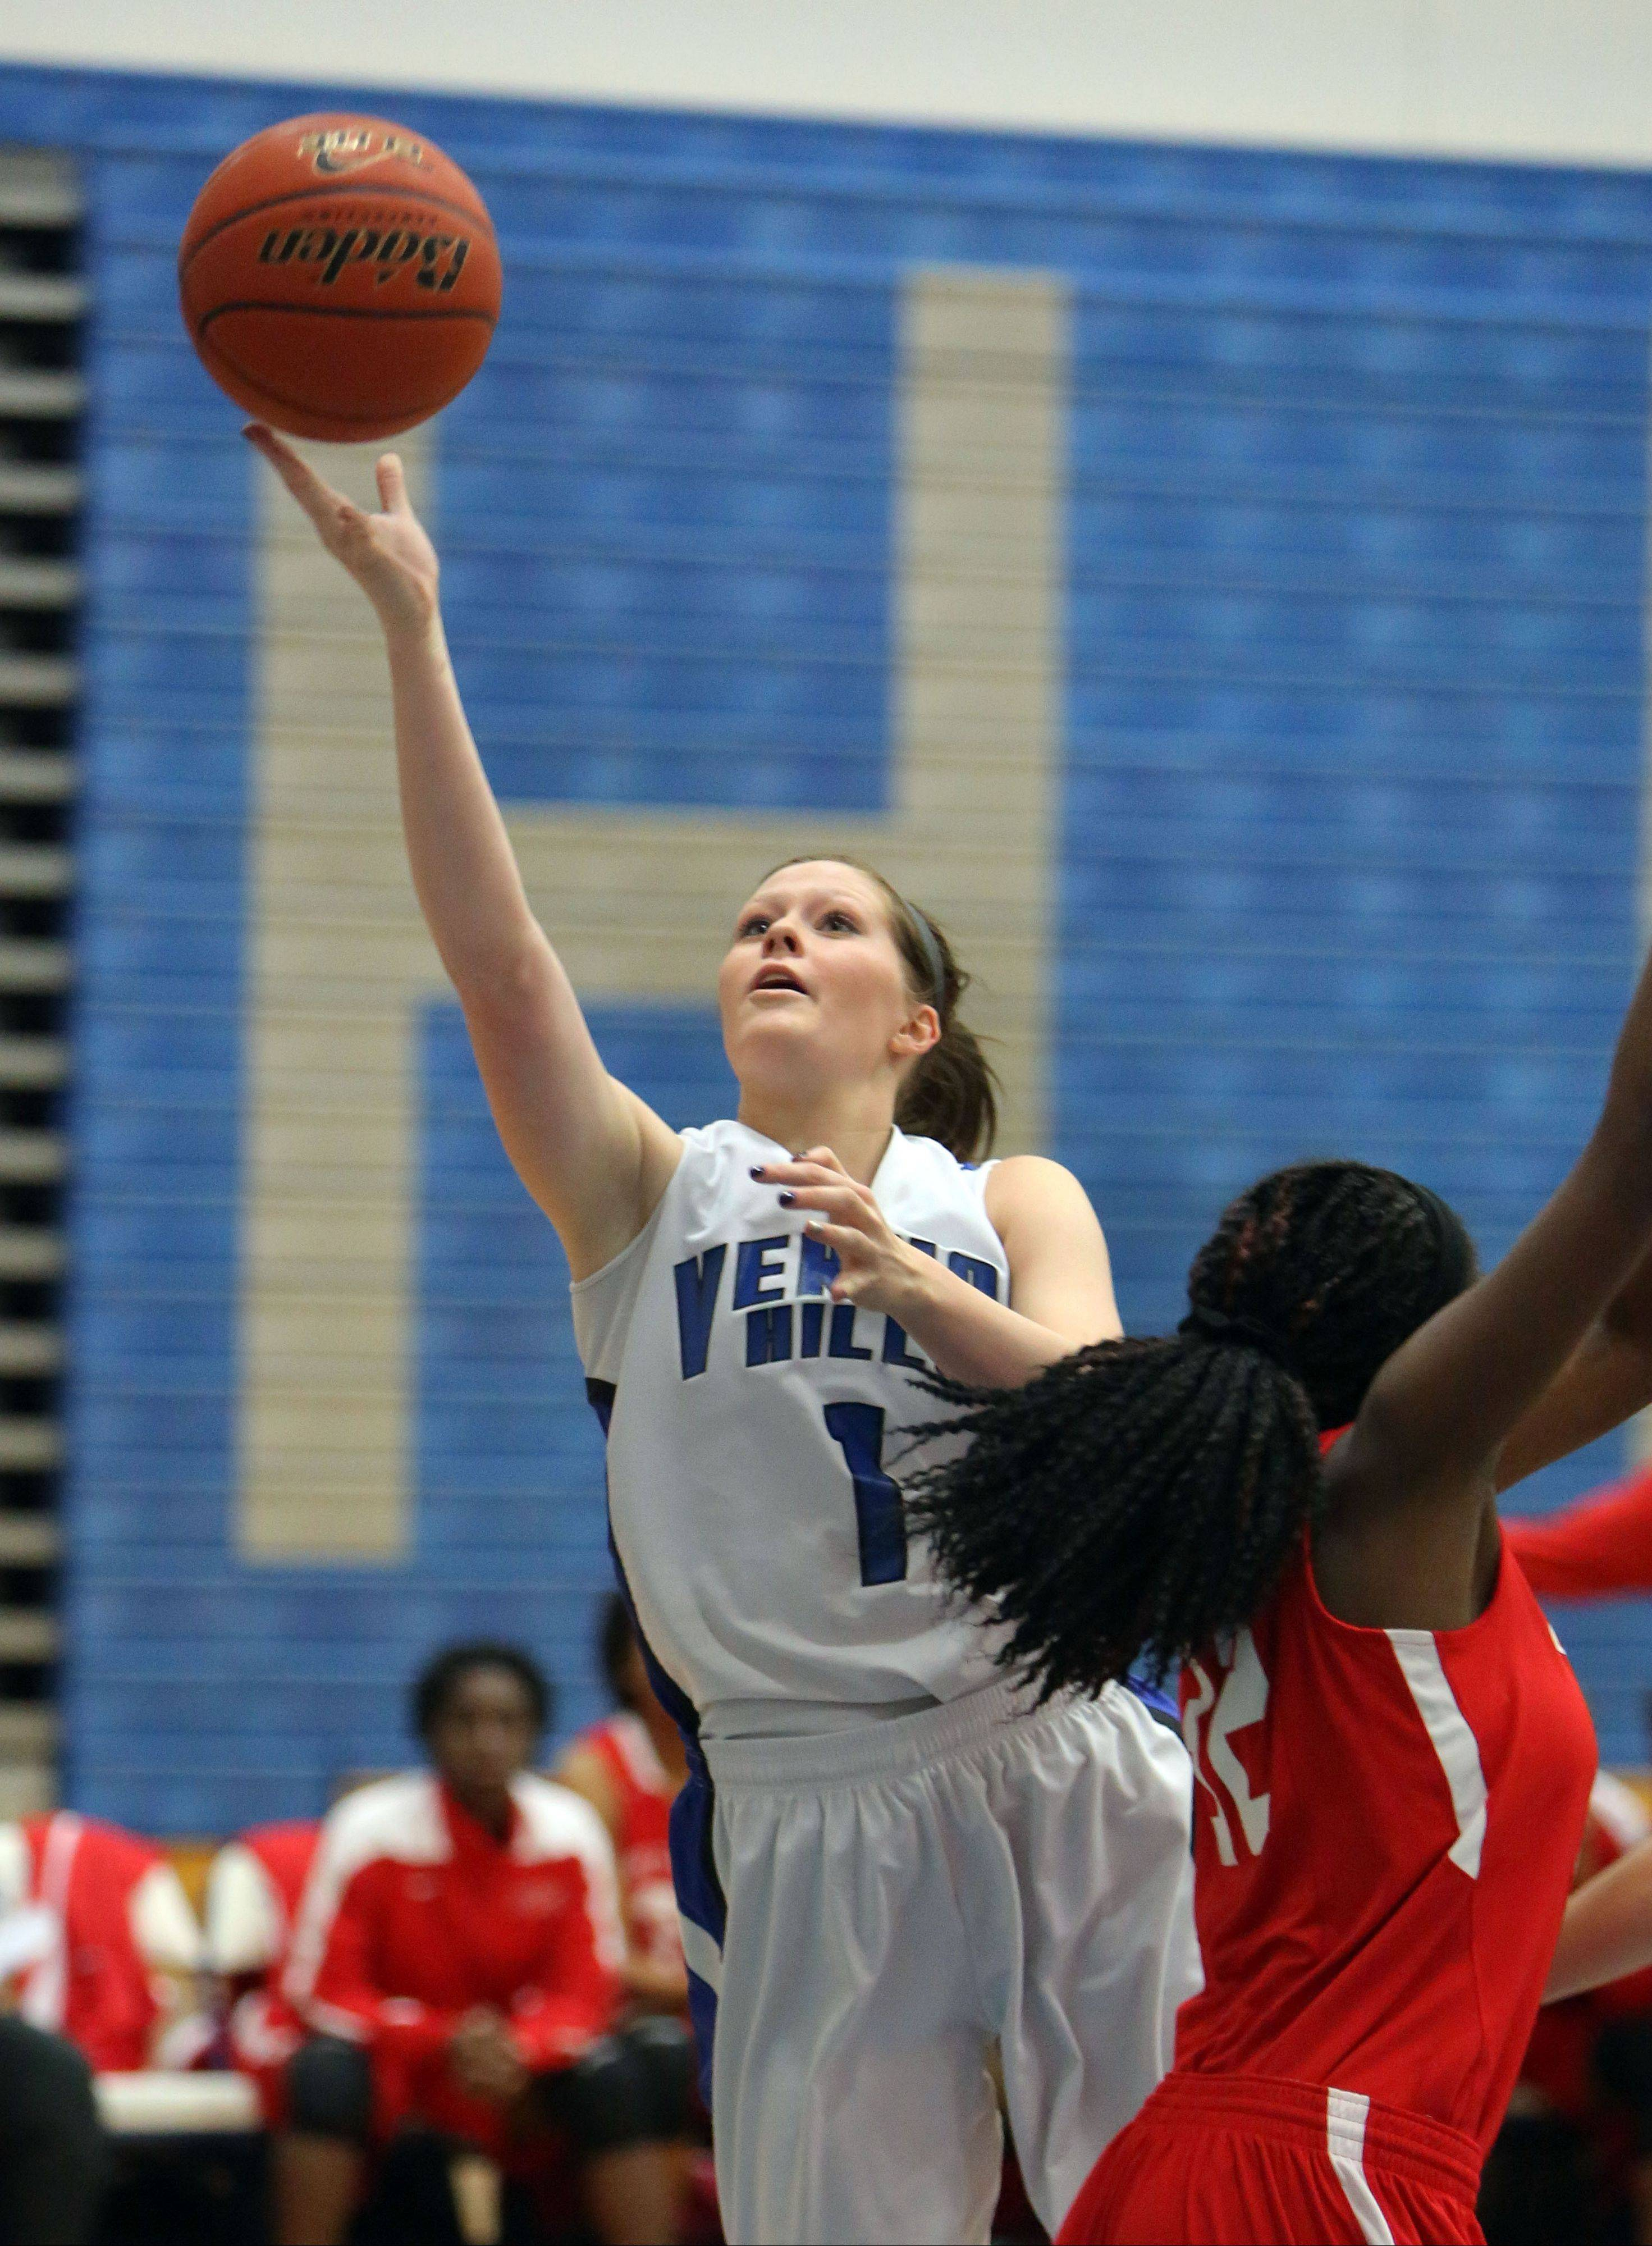 Vernon Hills' Sydney Smith drives past North Chicago's Kylah Collins on Wednesday at Vernon Hills.